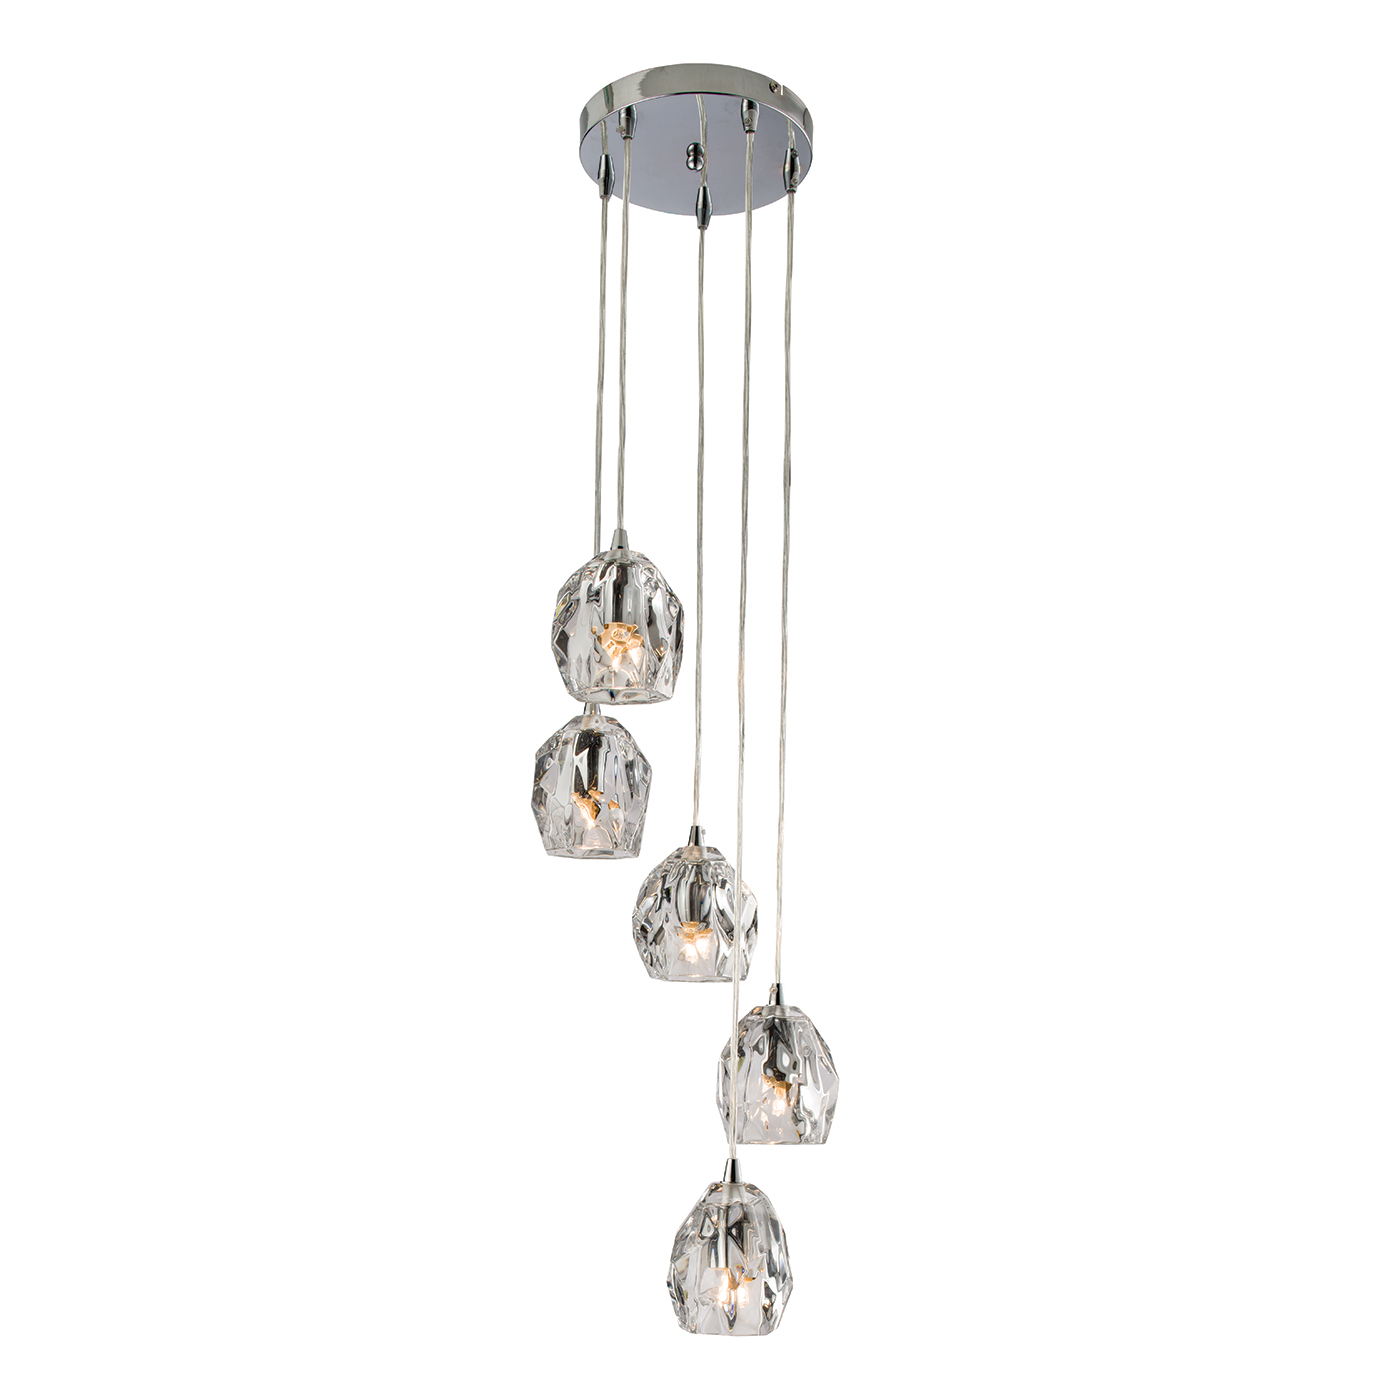 Endon Poitier pendant 5x 18W Chrome effect plate & clear glass Thumbnail 1